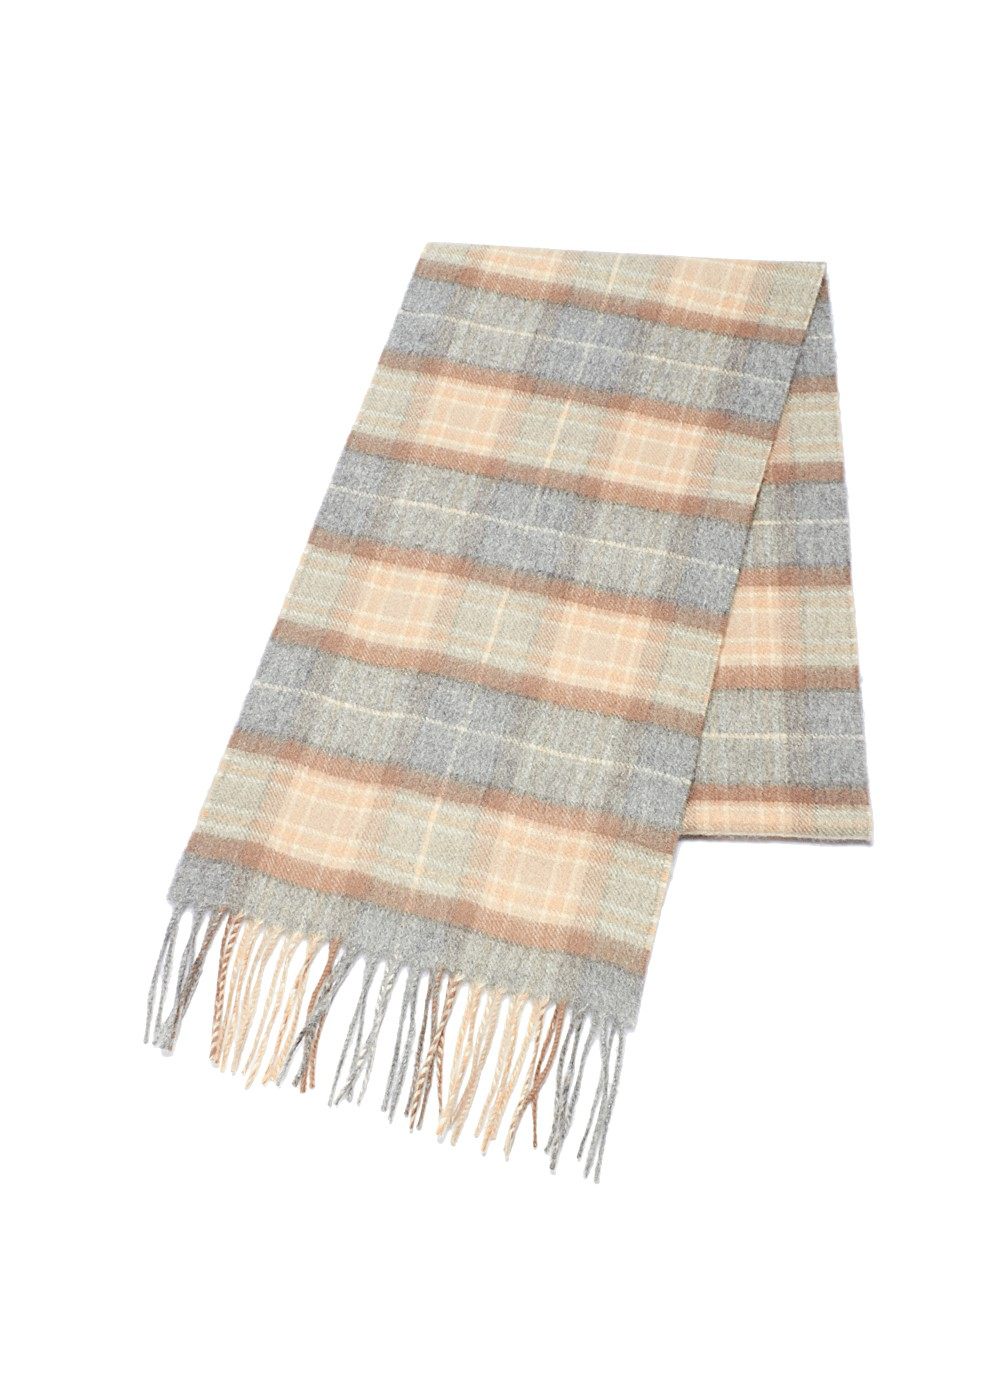 Tartan マフラー|Natural Mackellar|ストール|Johnstons(I)|最大46%OFF